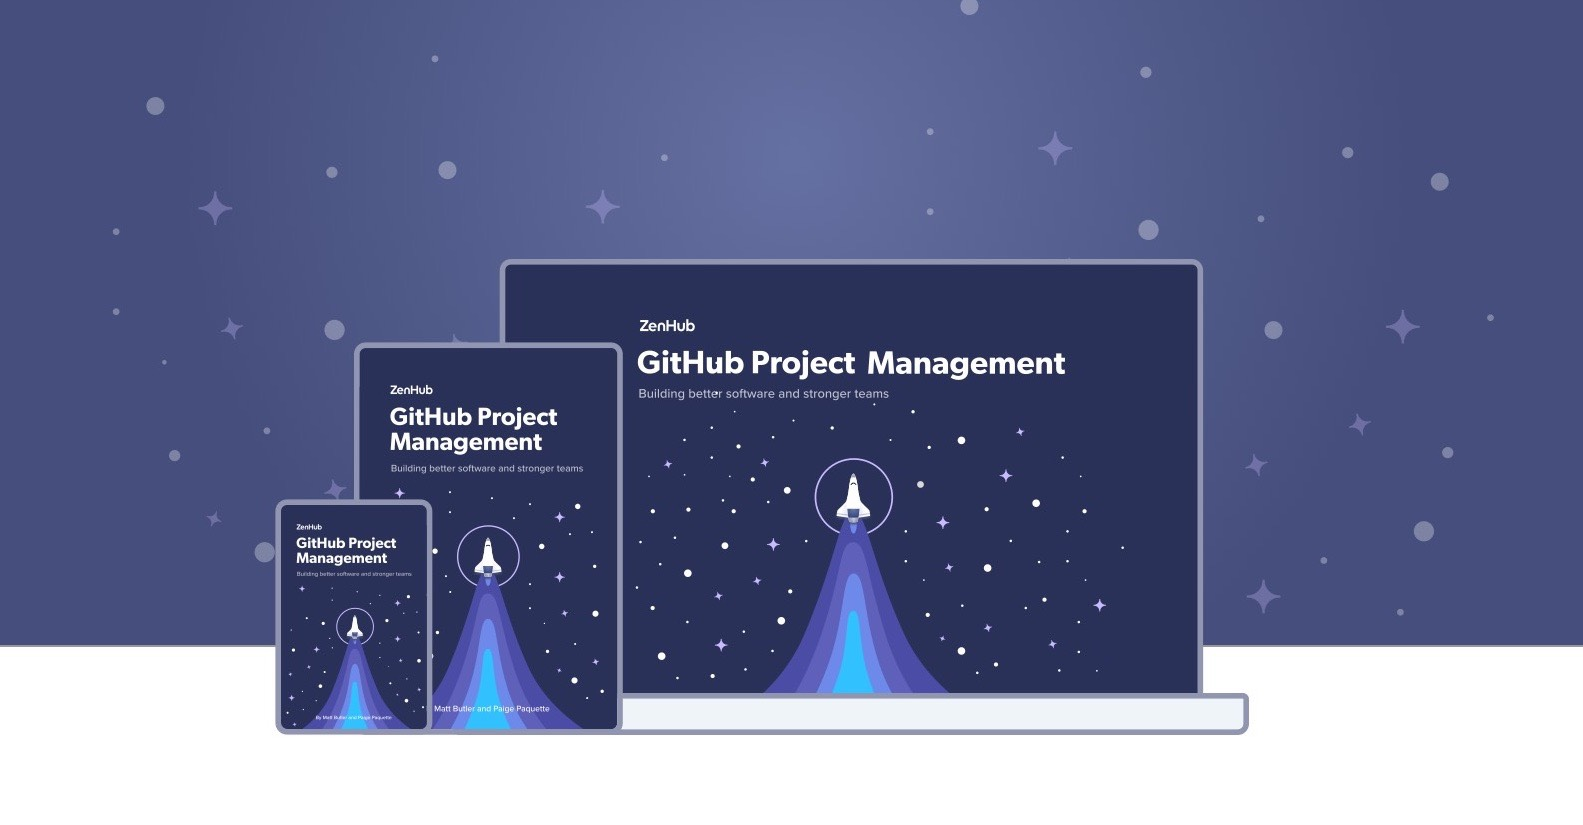 What you'll learn from our new book on GitHub project management